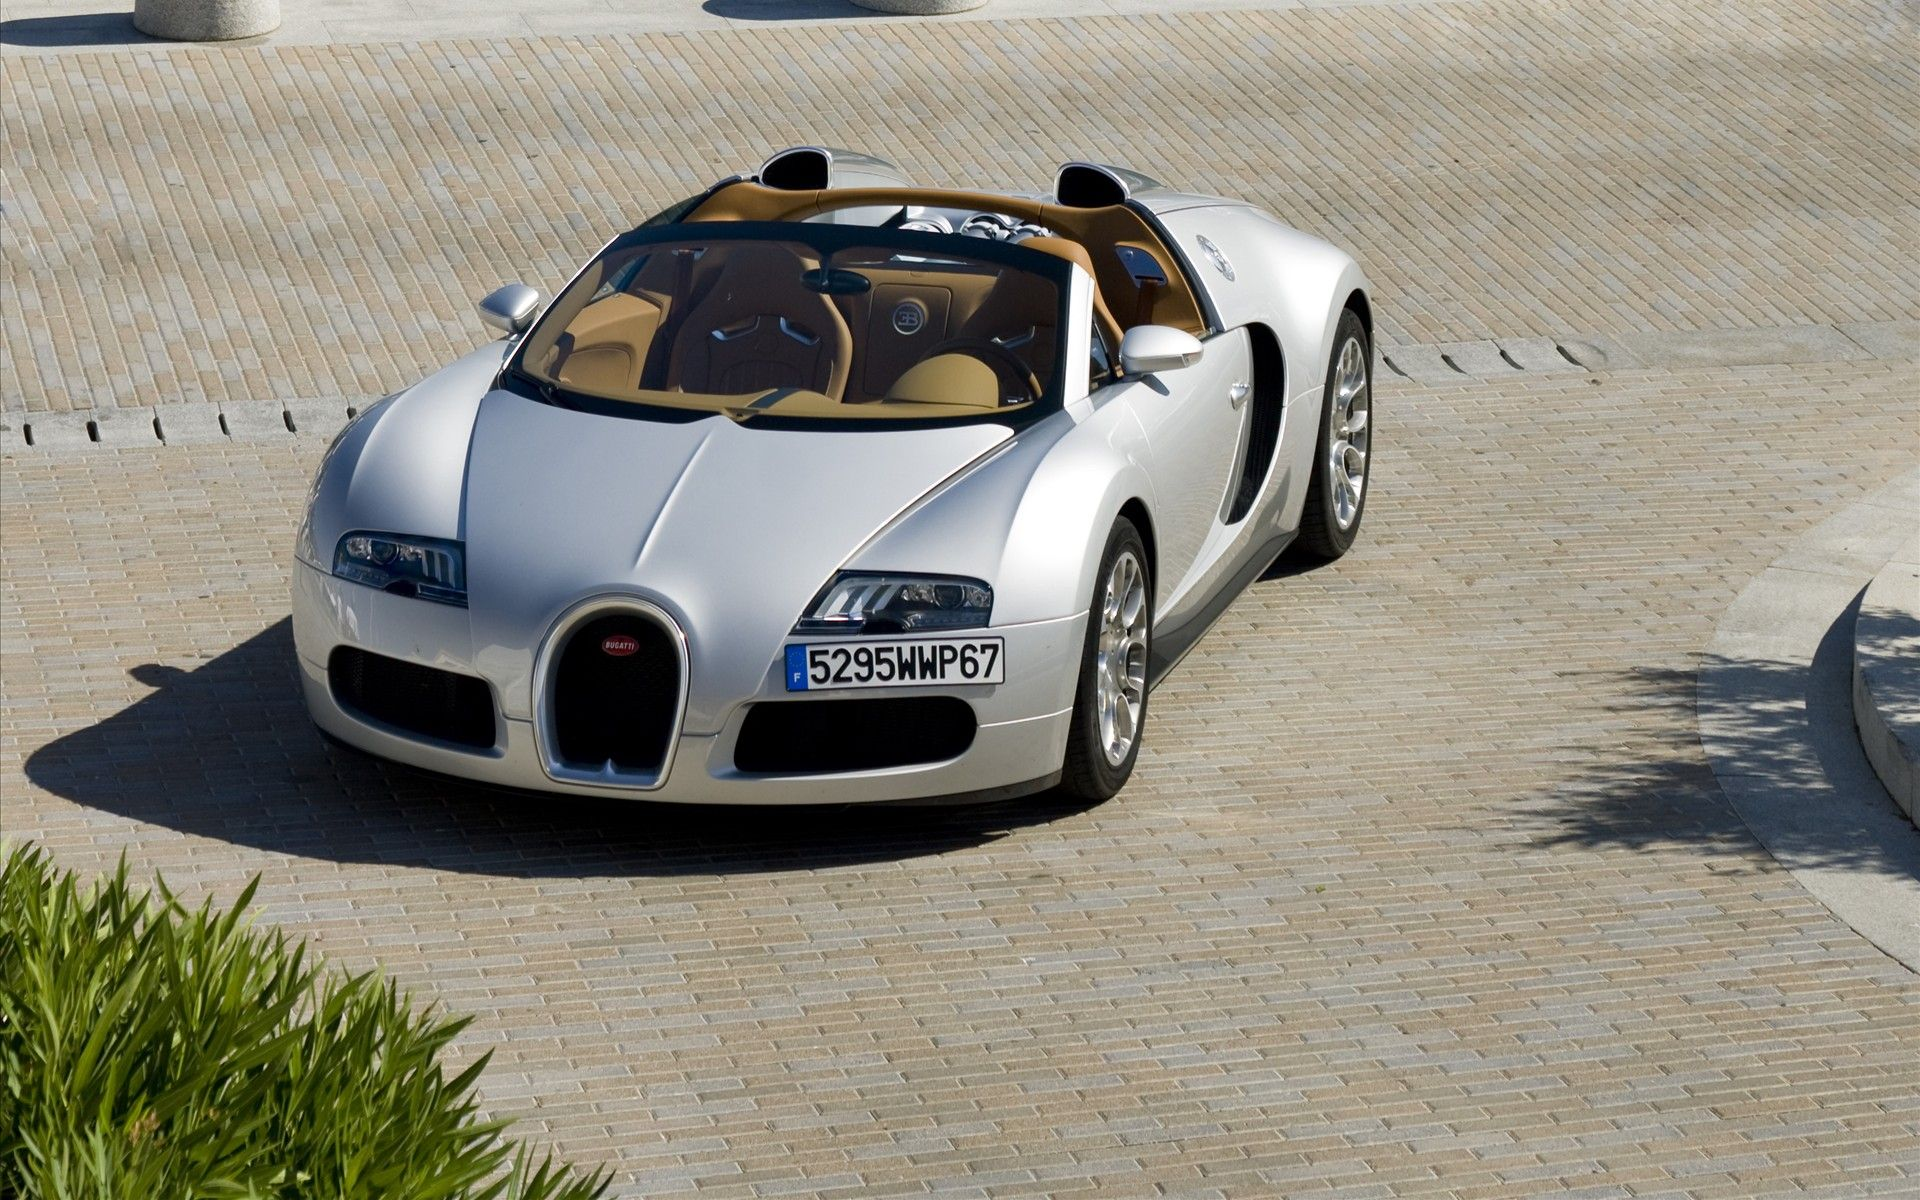 //www.hottergaming.com/2013/03/Midnight-Club-3-DUB-Edition-Psp ... on bugatti gt, bugatti eb, bugatti wagon, bugatti transmission, bugatti crash, bugatti w16, bugatti motorcycle, bugatti gt3, bugatti veyron, bugatti turbo, bugatti gran turismo concept, bugatti driving, bugatti atv, bugatti tires, bugatti owners, bugatti type 13, bugatti civic, bugatti hypersport, bugatti burnout,